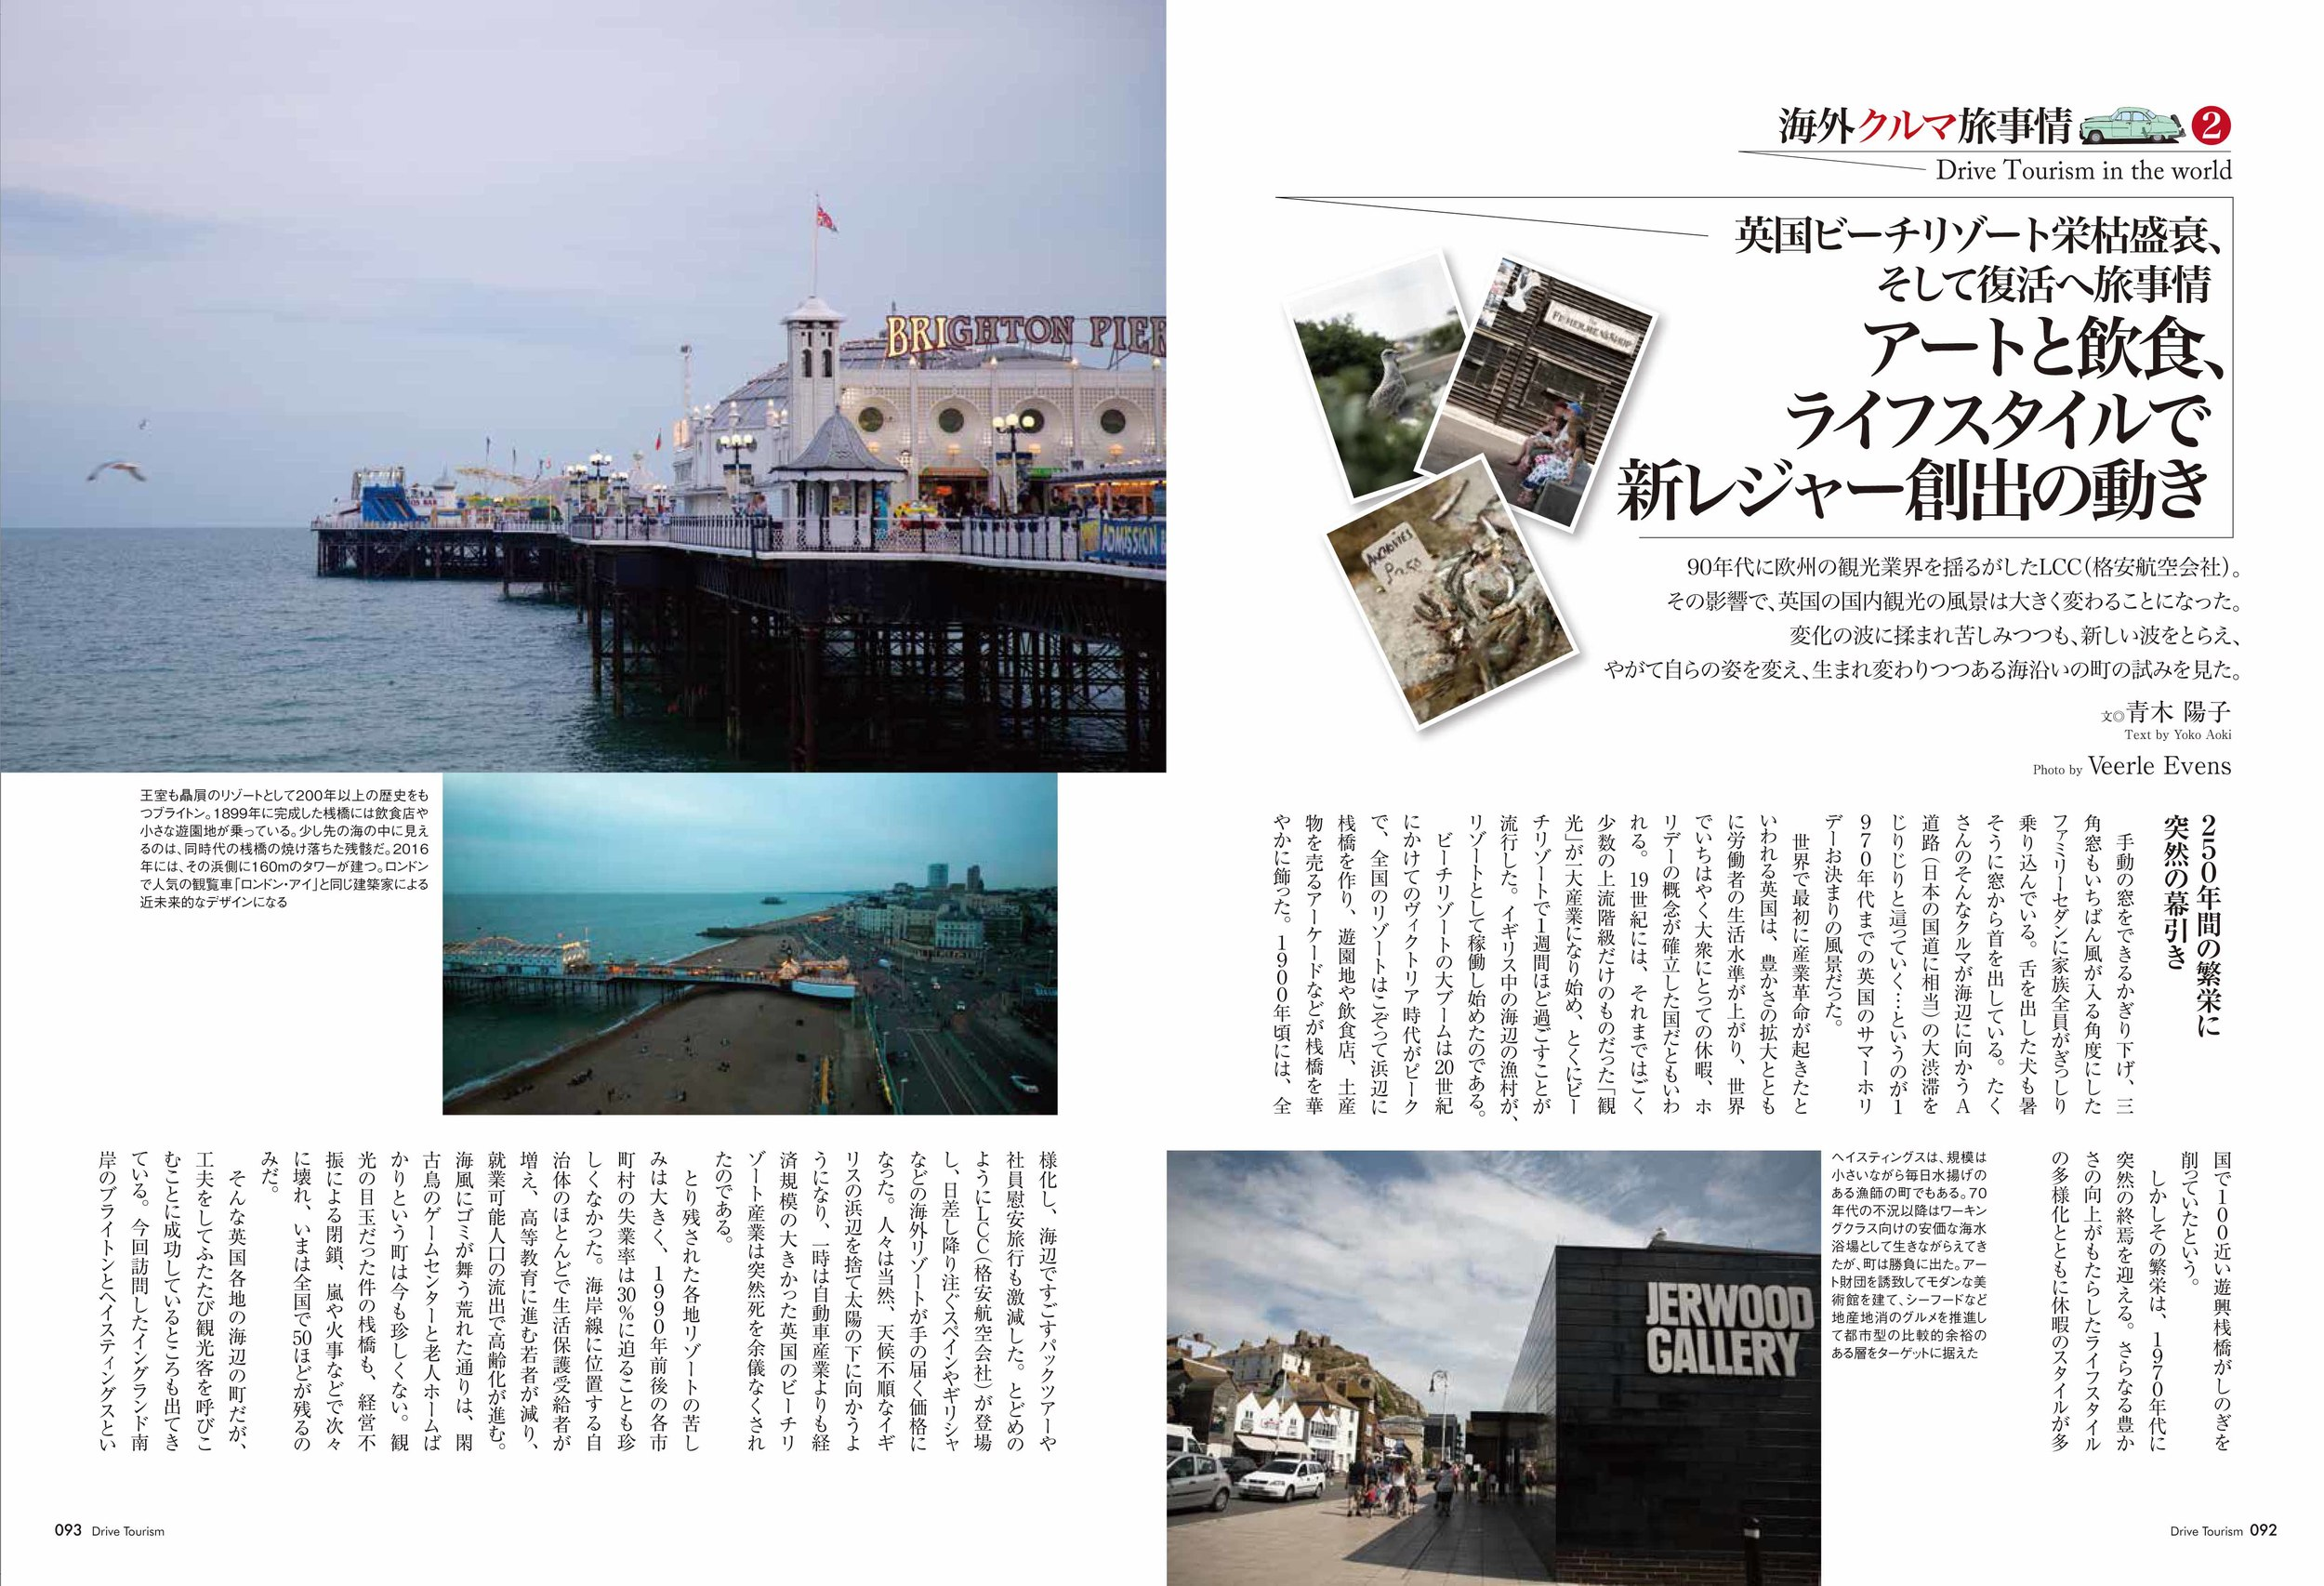 Japanese Automobile Federation Magazine    British Seaside Tourism, Autumn 2014. Photography by Veerle Evens Words by Yoko Aoki